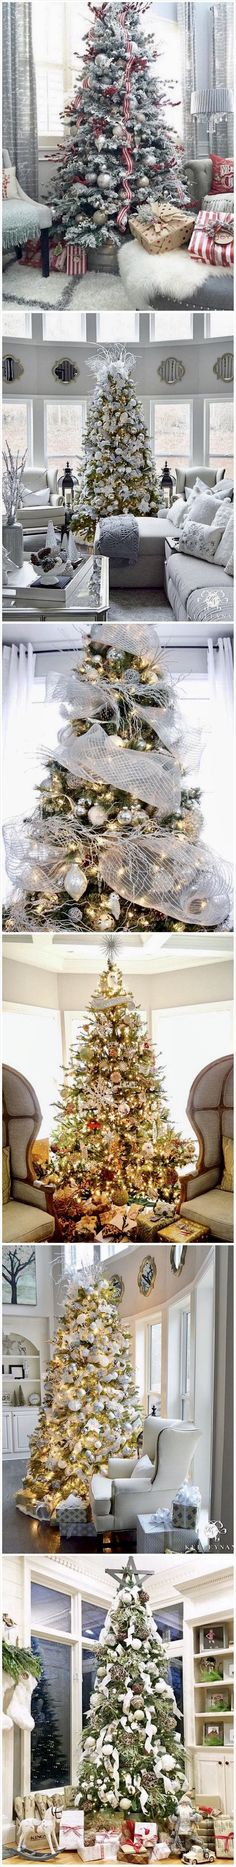 Christmas Tree Decorating Ideas - Xmas @styleestate